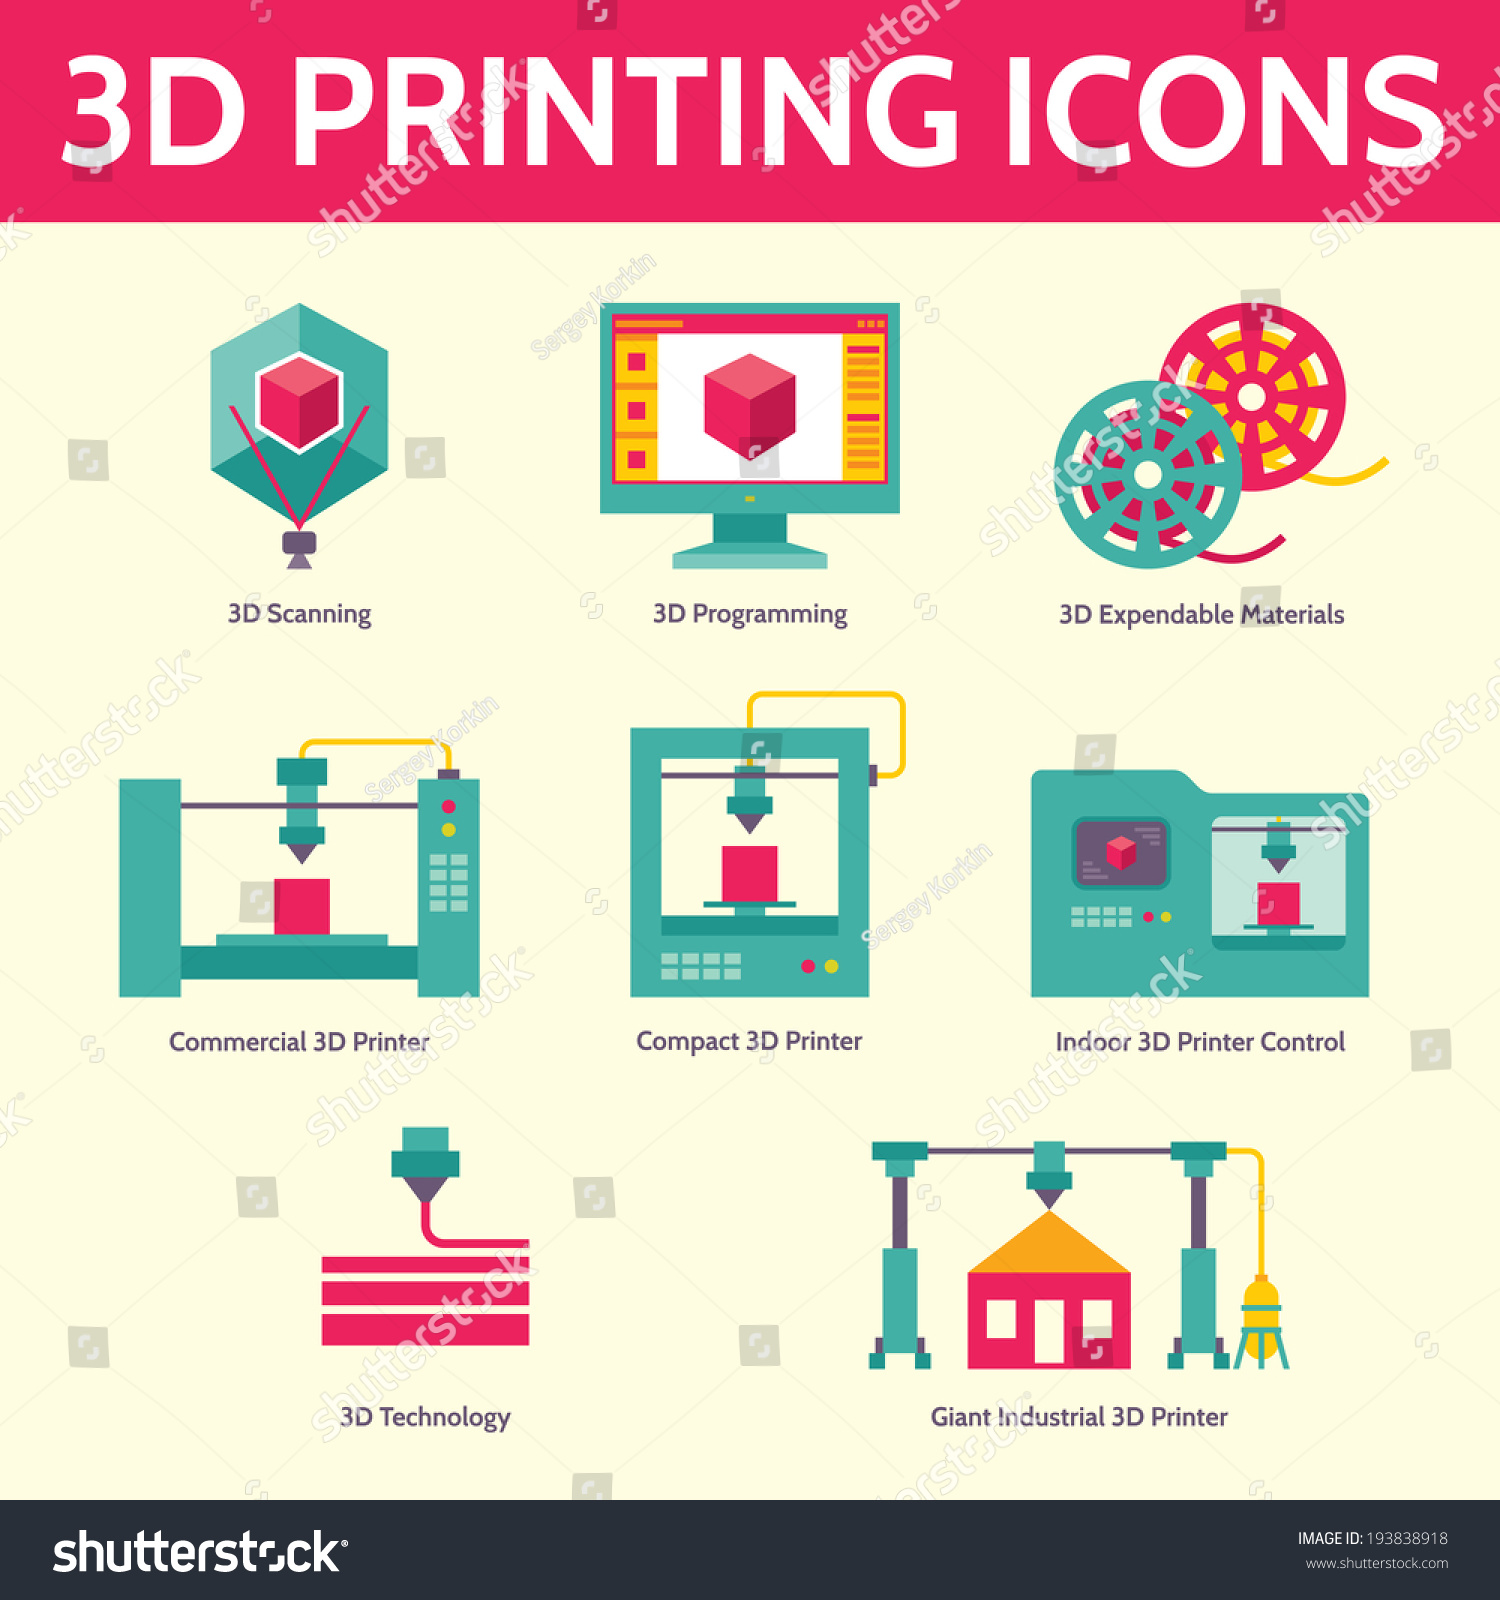 3d Printing Vector Icons Flat Design Stock Vector